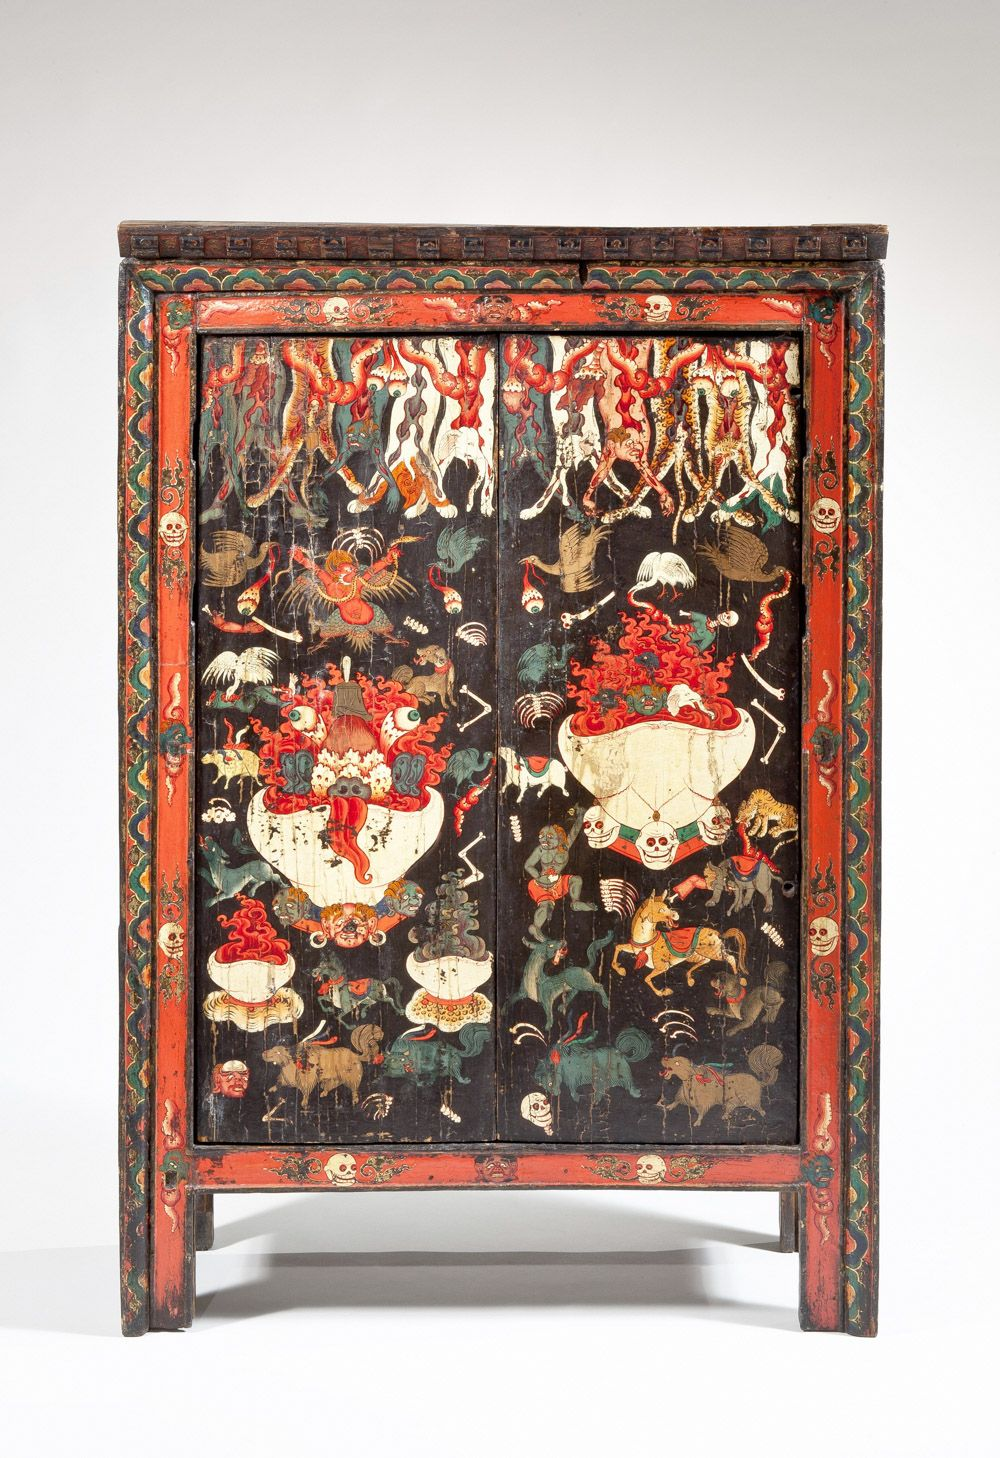 Torgam Ritual Cabinet with Offerings for Wrathful Deities. Tibet 18th-19th century. Wood, pigment. Credit: Collection of the Newark Museum 2013.25.